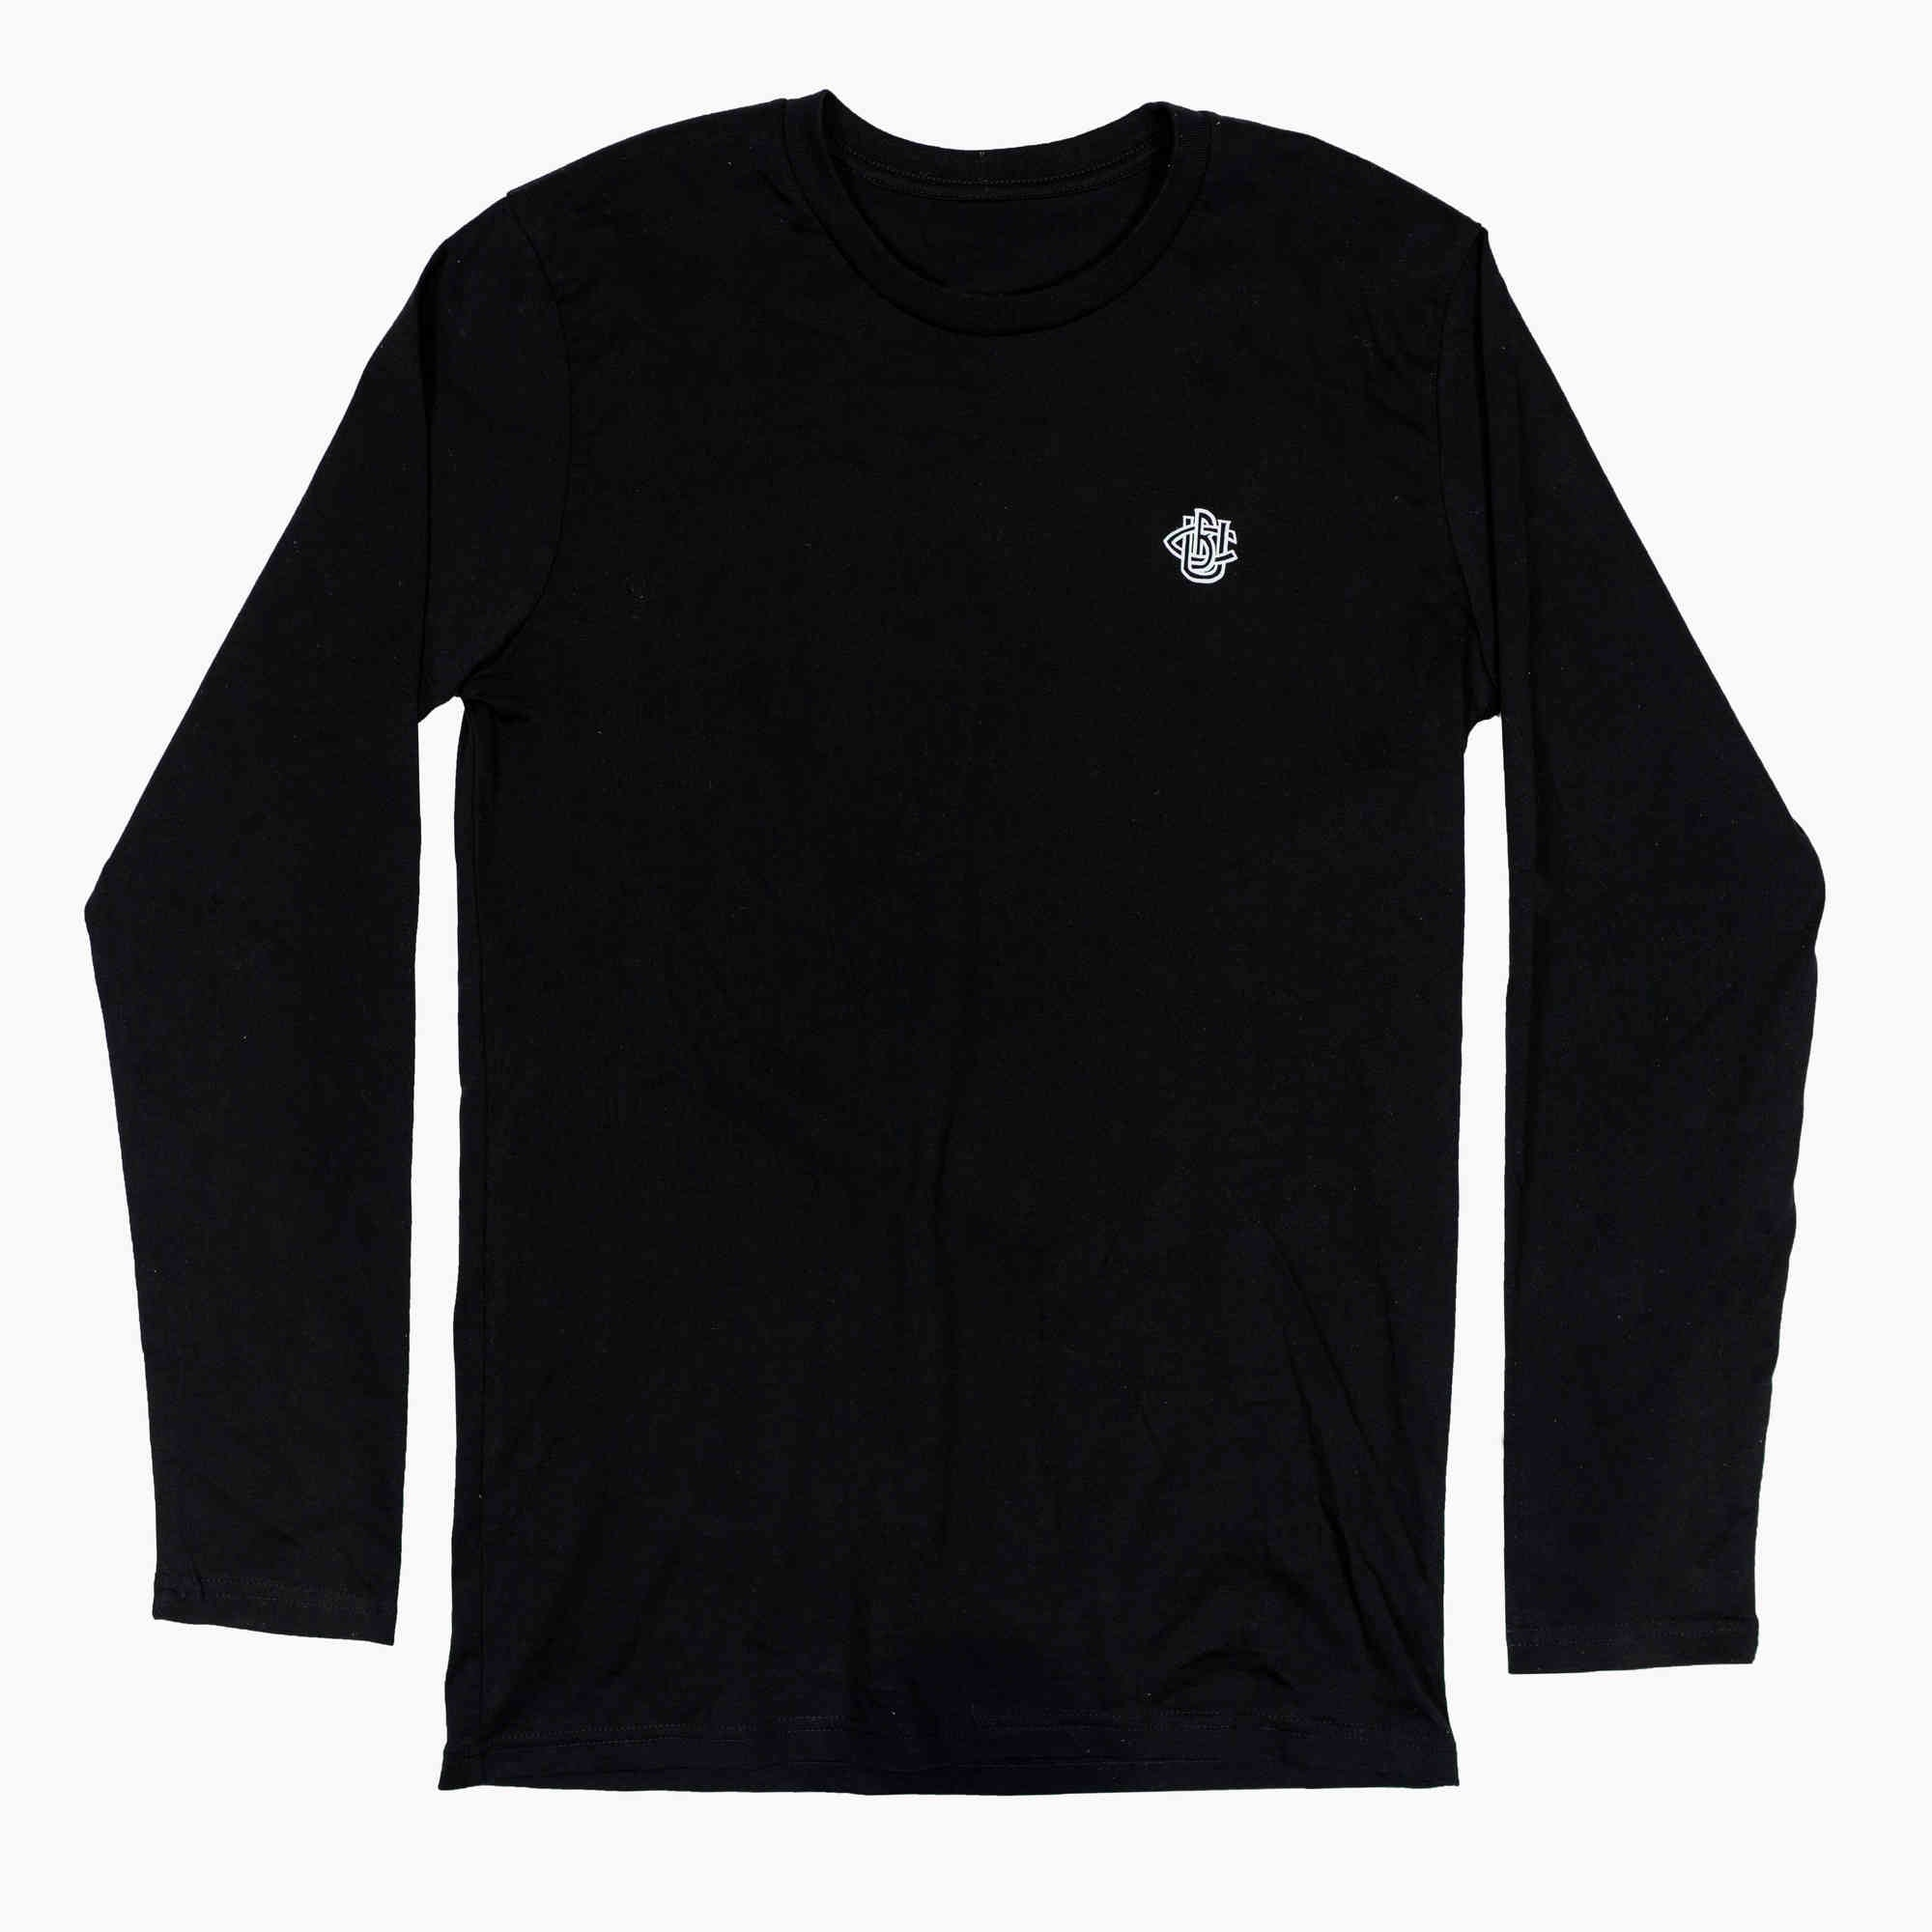 Most Appetising Long Sleeve Tee Black